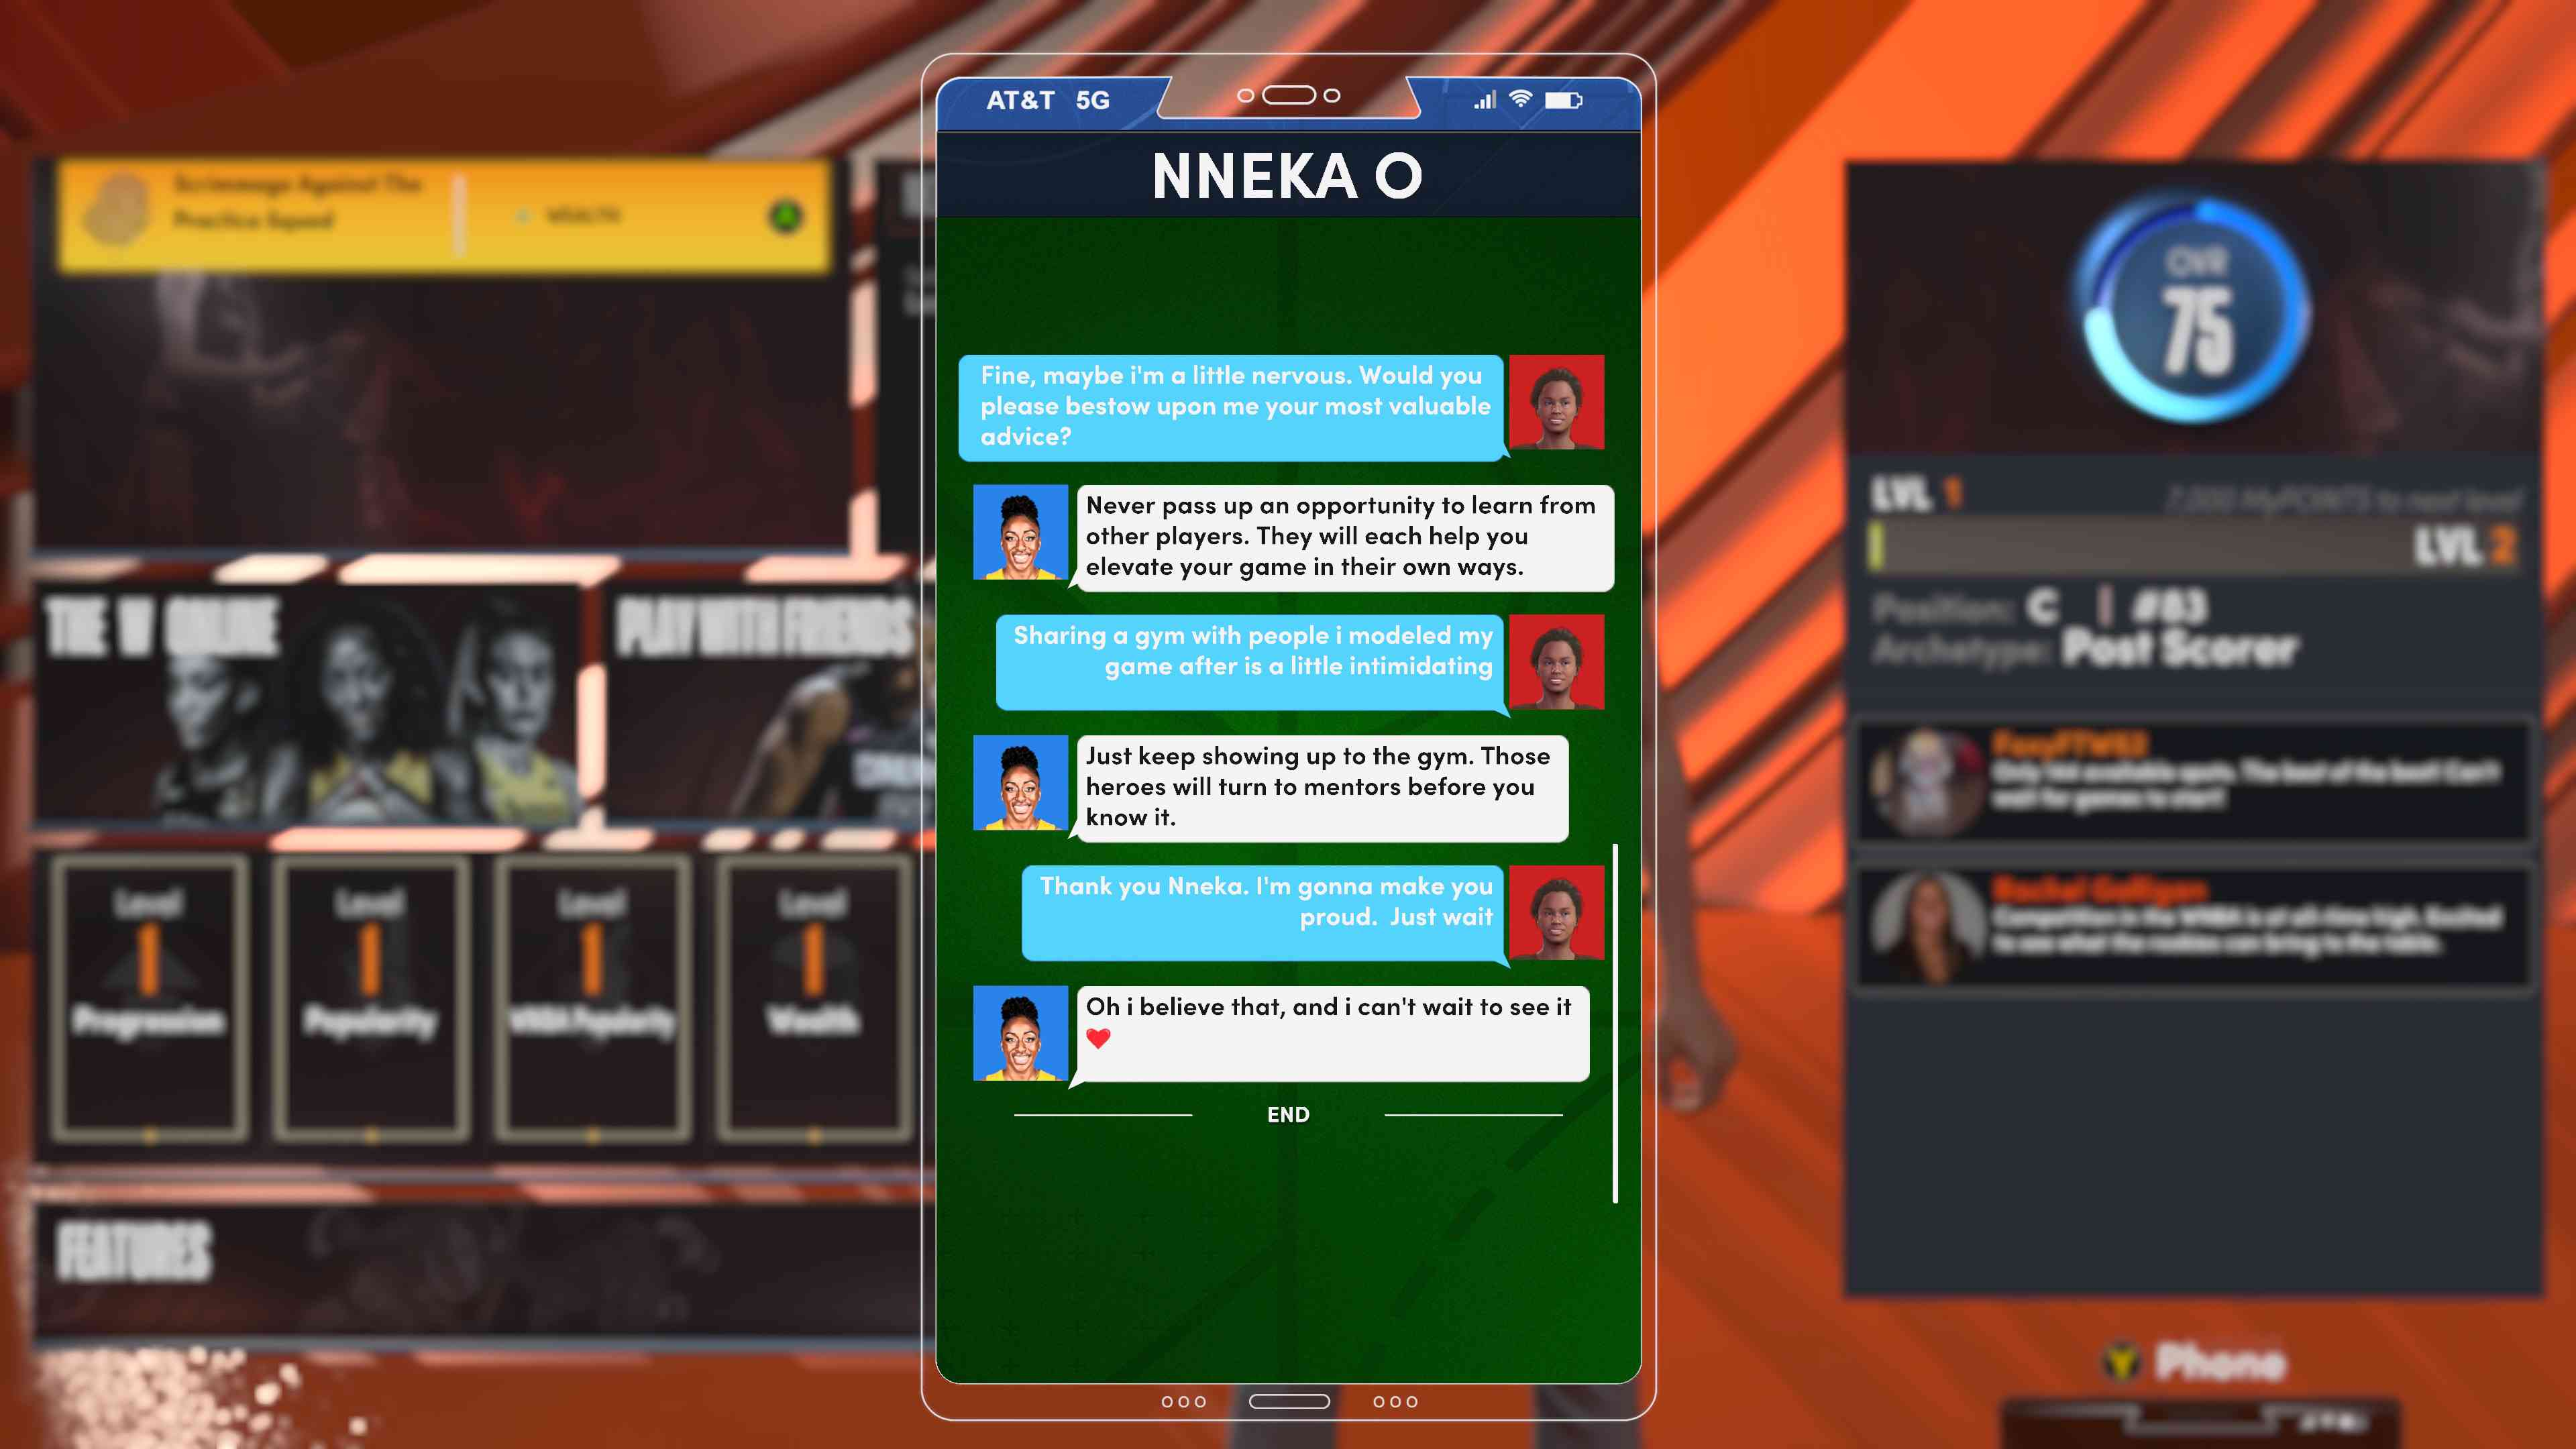 In-game texting in NBA 2K22's WNBA career mode